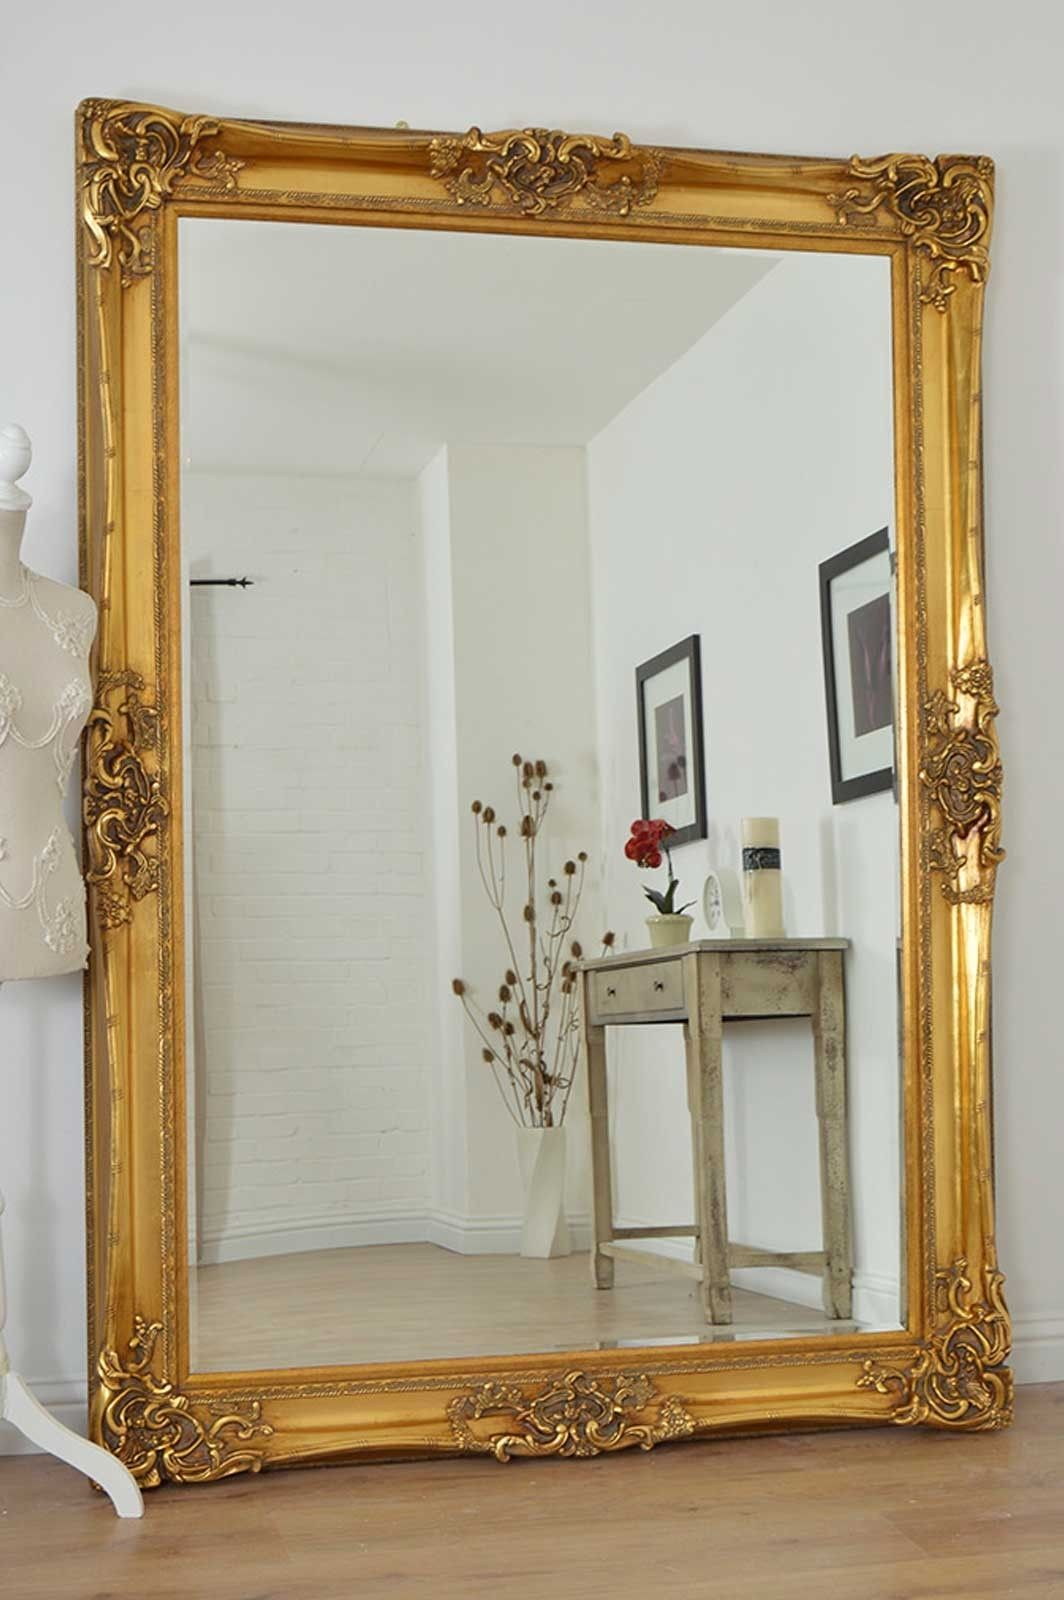 Antique Wall Mirrors Large Gold Mirror Wall Mirror Wall Bedroom Large Wall Mirror [ 1600 x 1064 Pixel ]